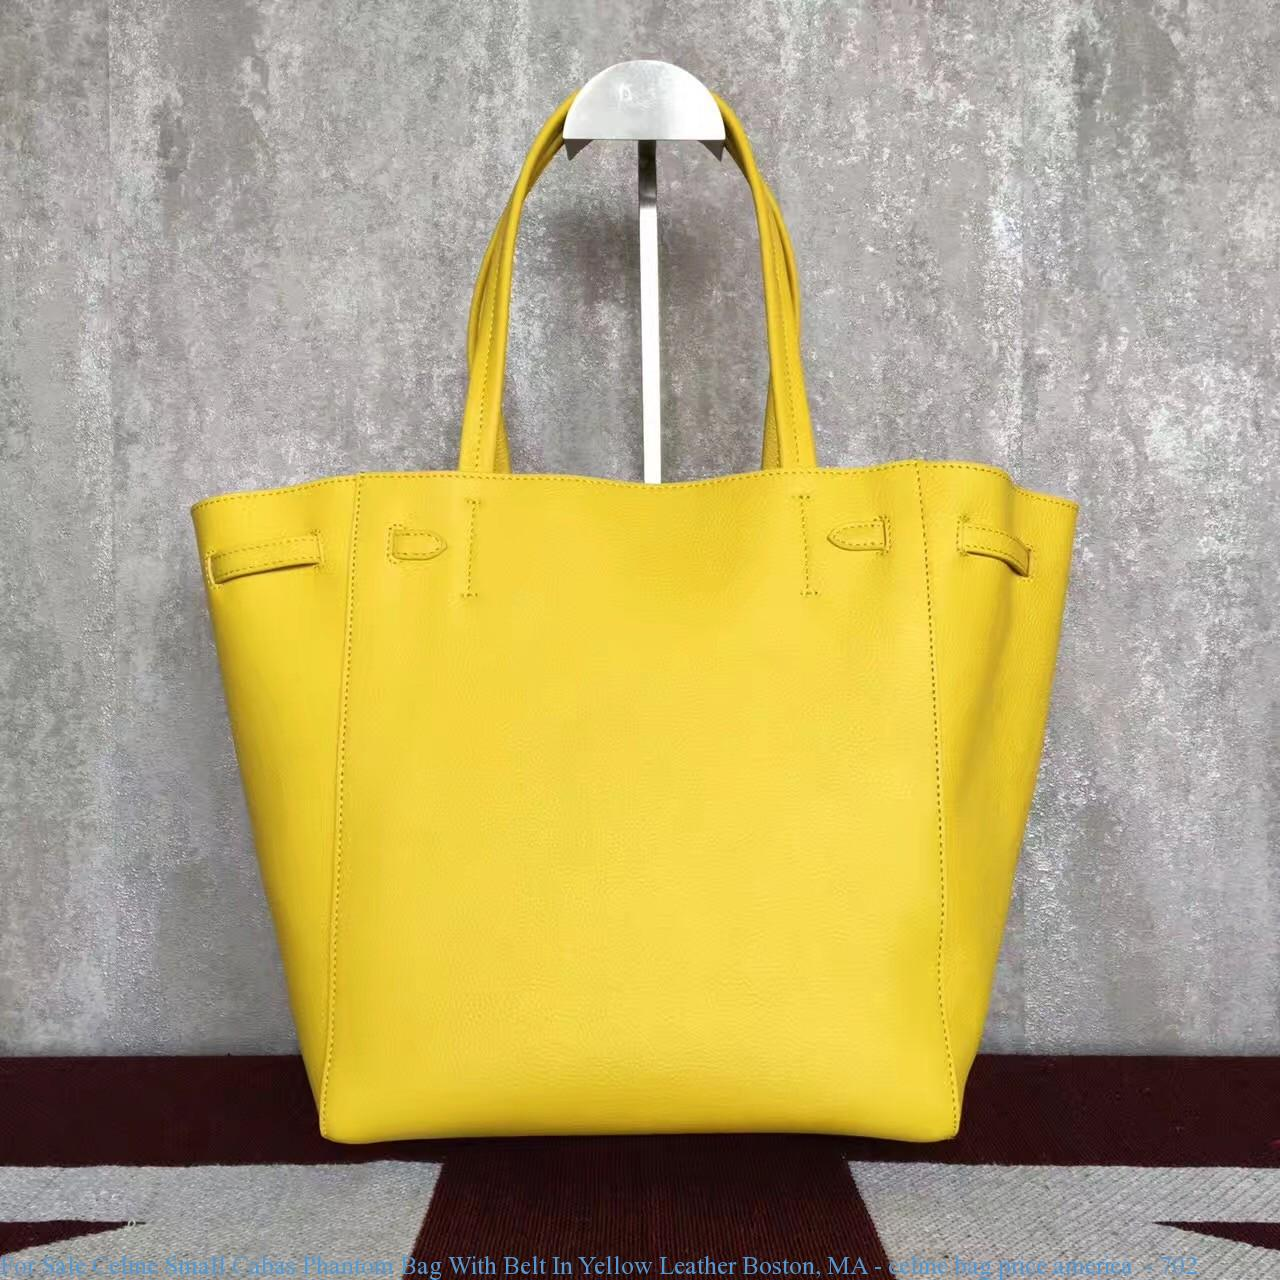 c62512ad5ca41 For Sale Celine Small Cabas Phantom Bag With Belt In Yellow Leather ...